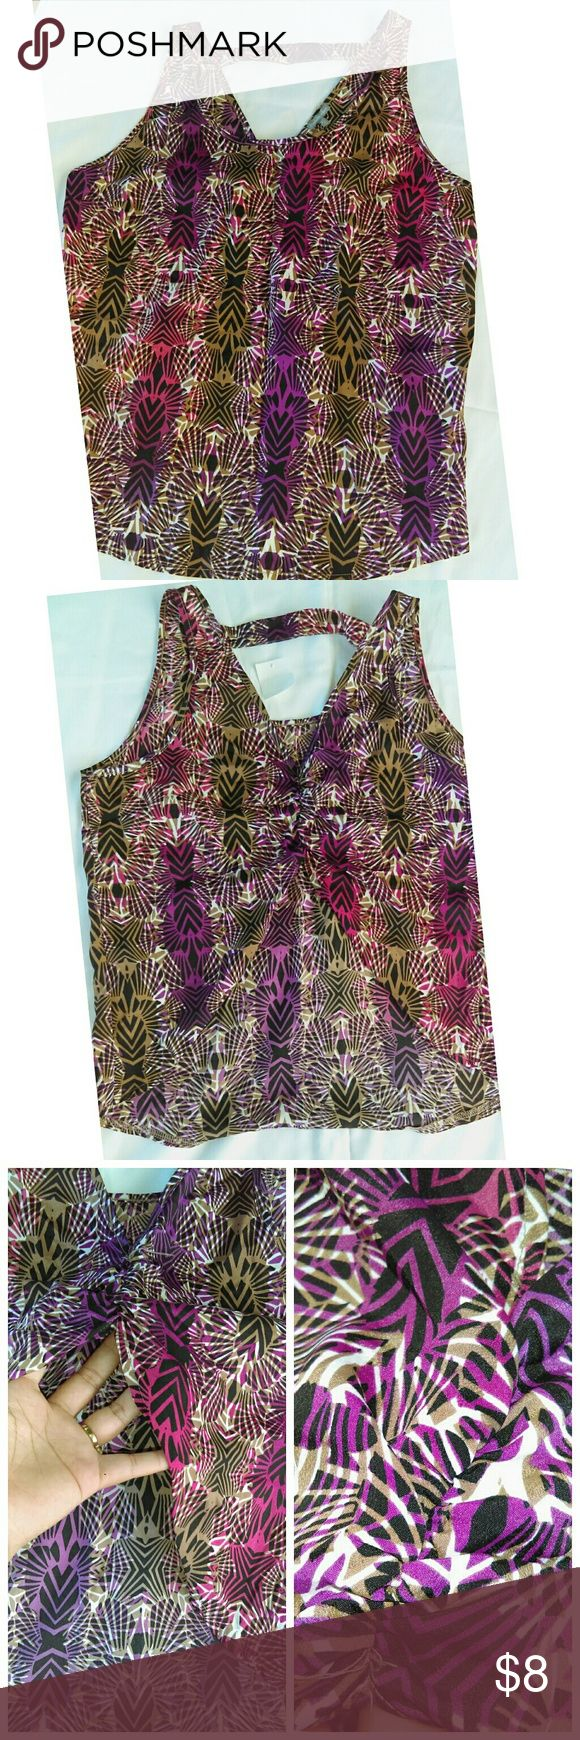 """Charlotte Russe open back blouse Purple & brown pattern with an open back starting from the mid back or wear your bra is usually located. Loose yet comfortable. Sold as is. Great condition. Brand new with tags. Size medium but could maybe fit large. 17"""" waist 17.5"""" front-height (flat lay measurements) .. no modeling Charlotte Russe Tops Blouses"""